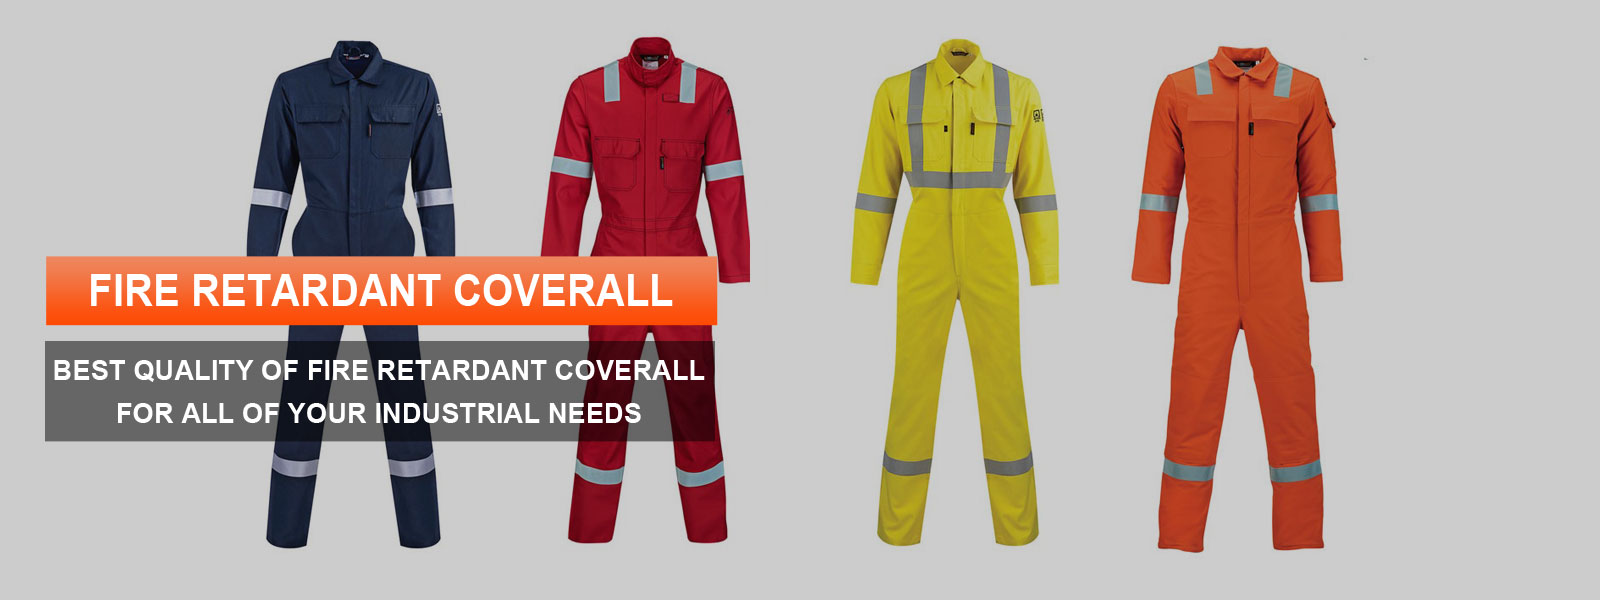 Fire Retardant Coverall Manufacturers in Qatar